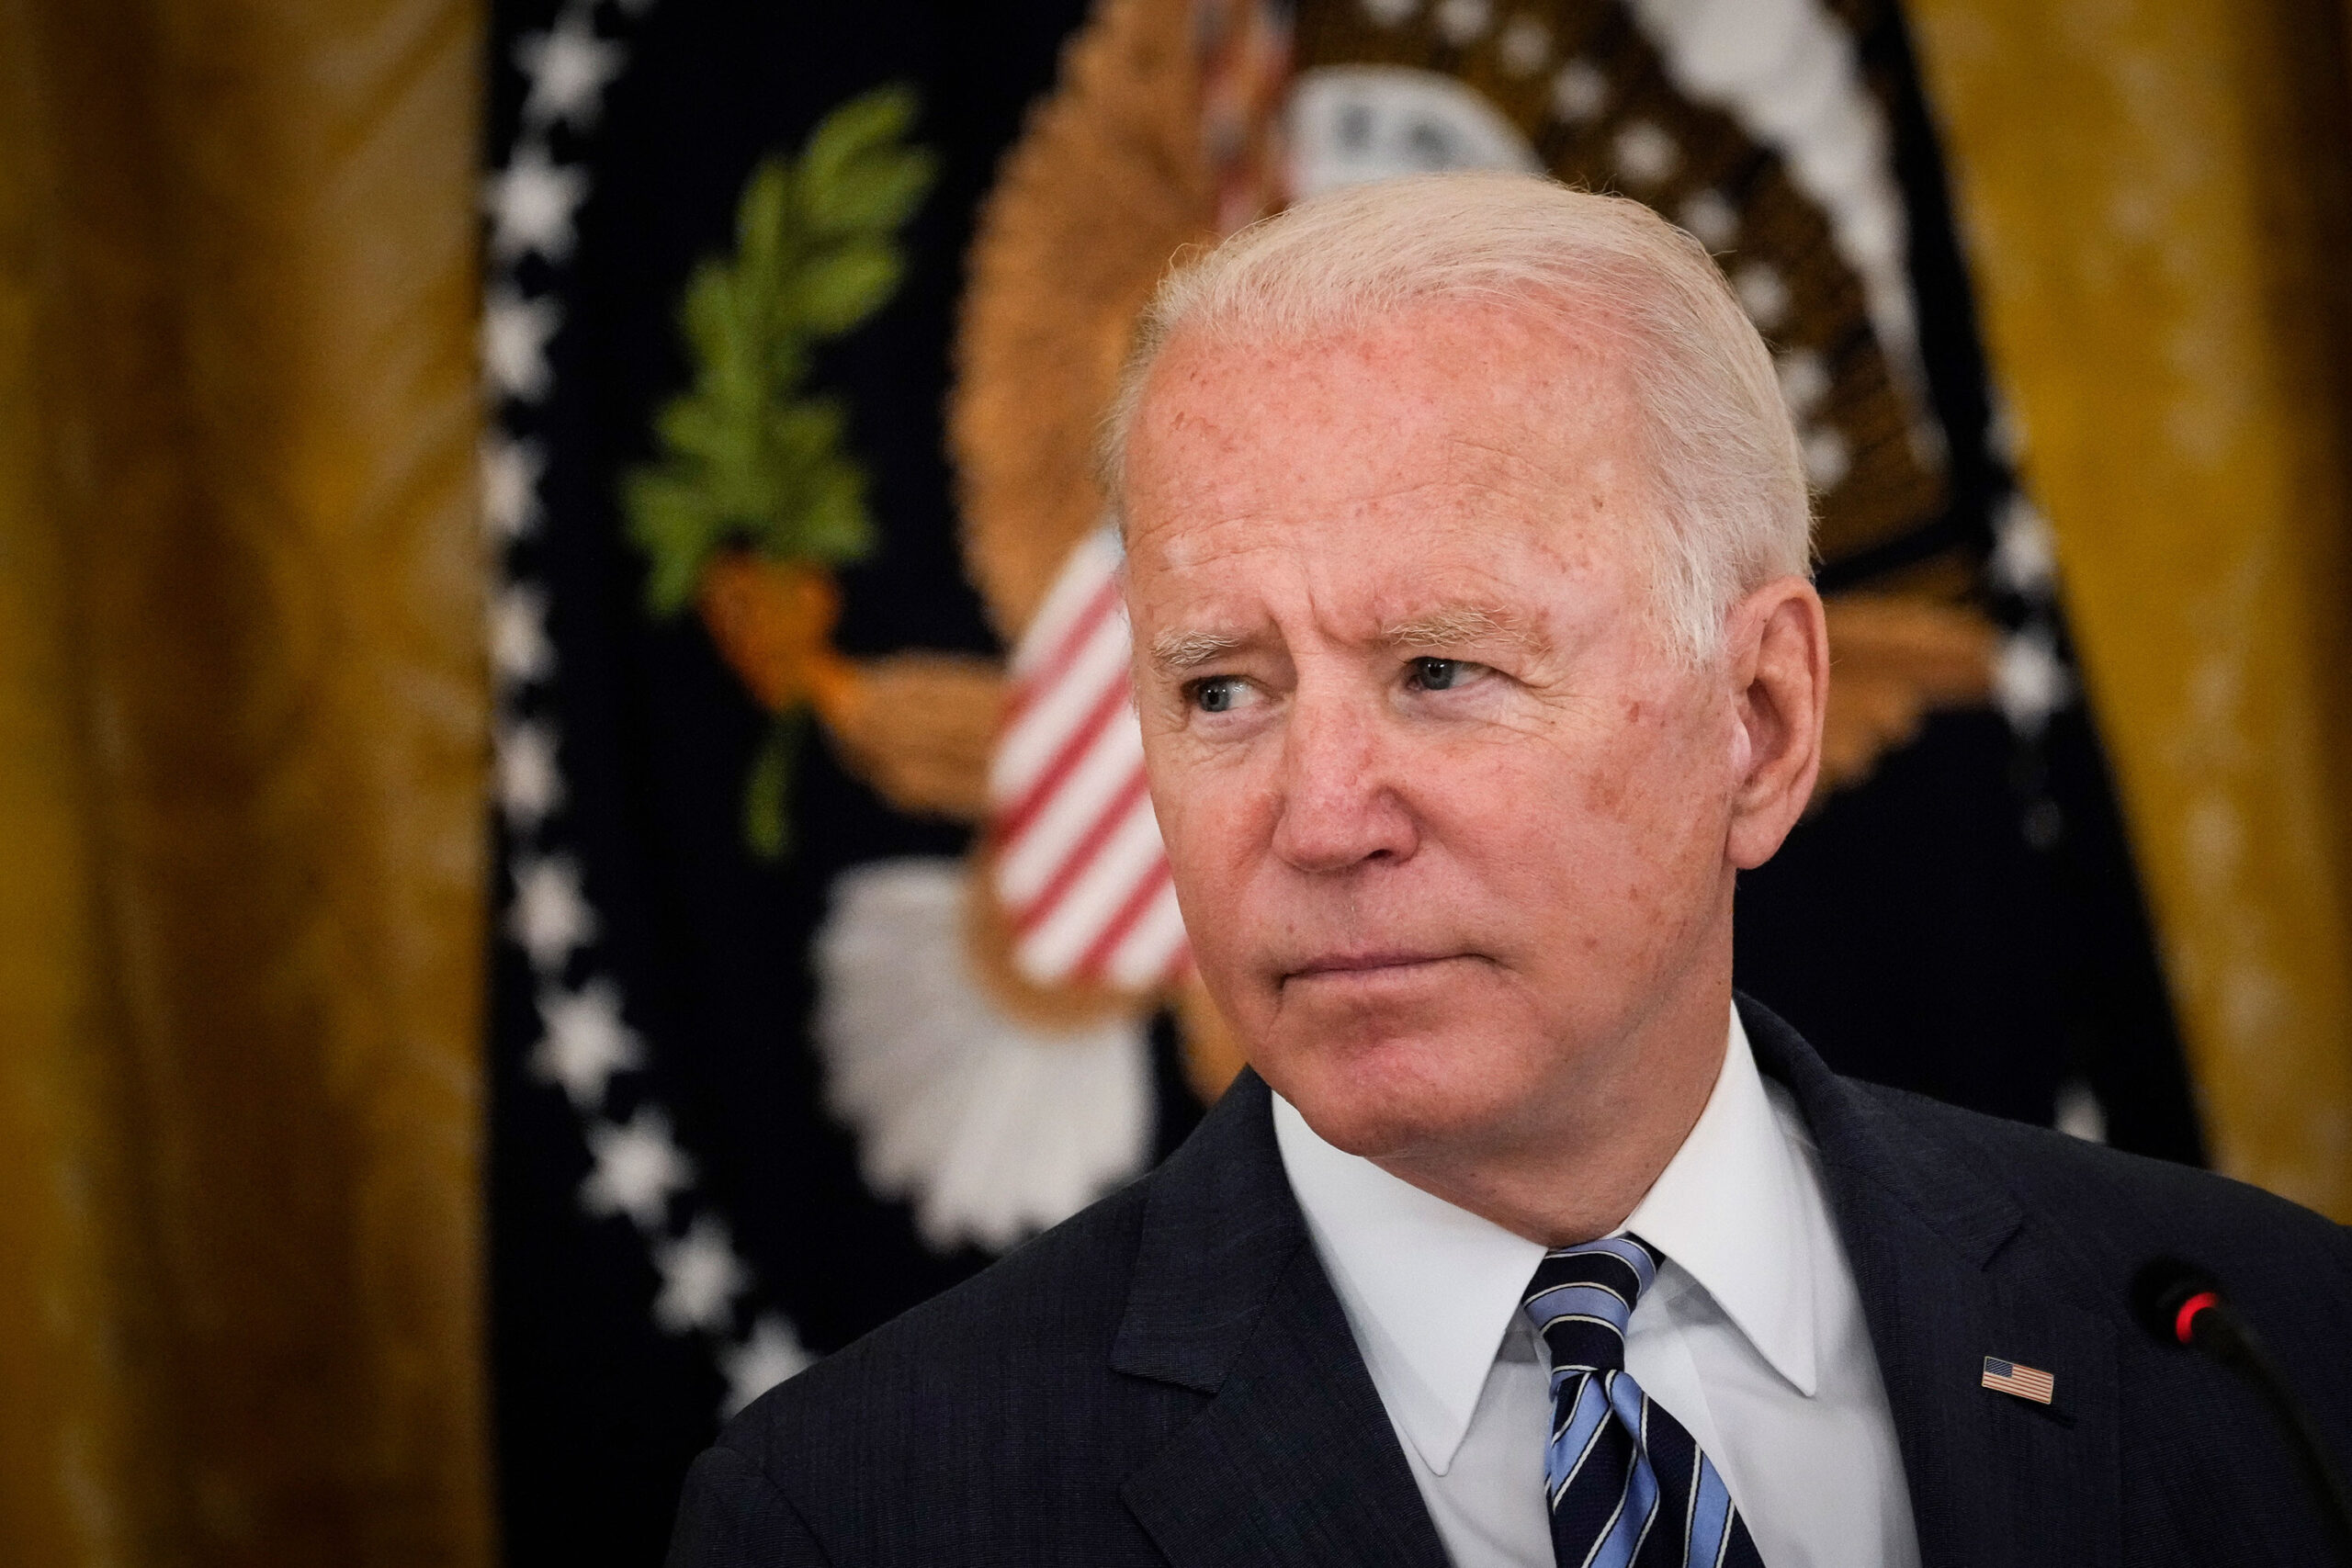 <i>Drew Angerer/Getty Images</i><br/>Democrats are speaking out against how the Biden administration is handling the situation at the border.